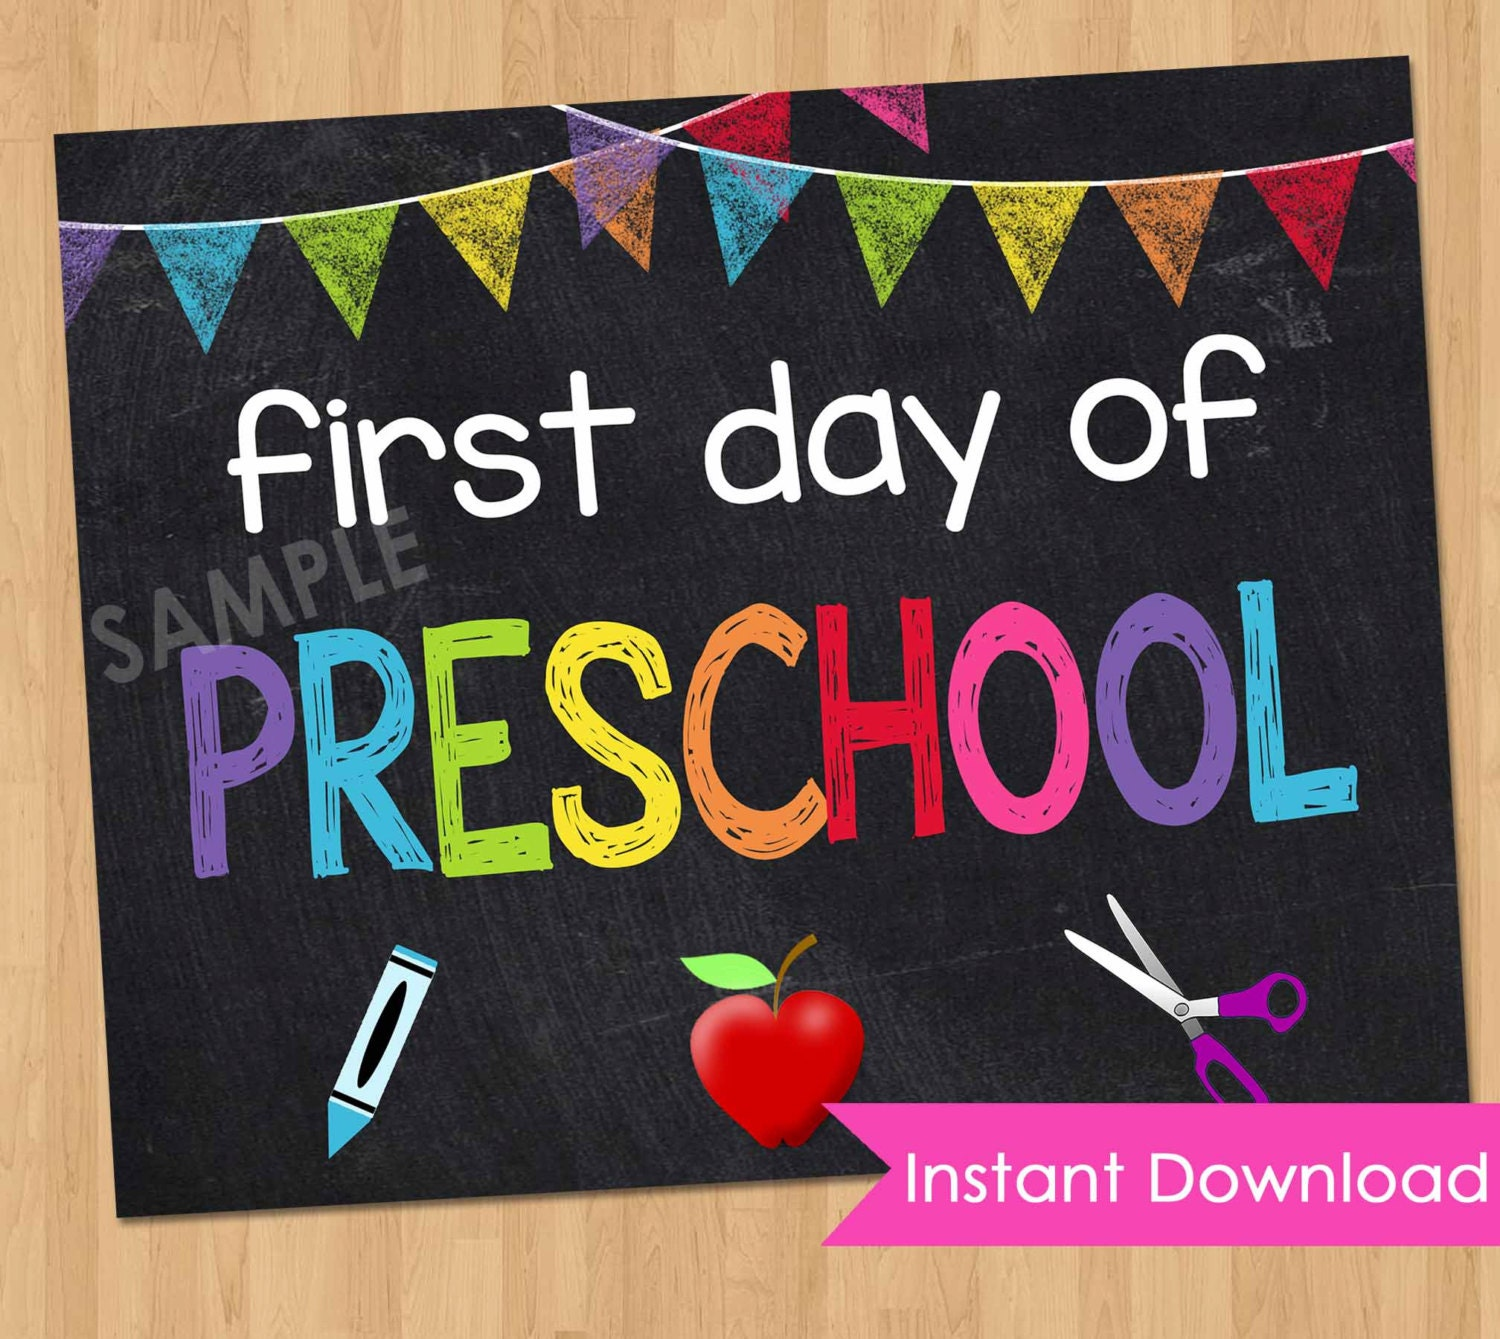 It's just a picture of Invaluable First Day of Preschool Printable Sign